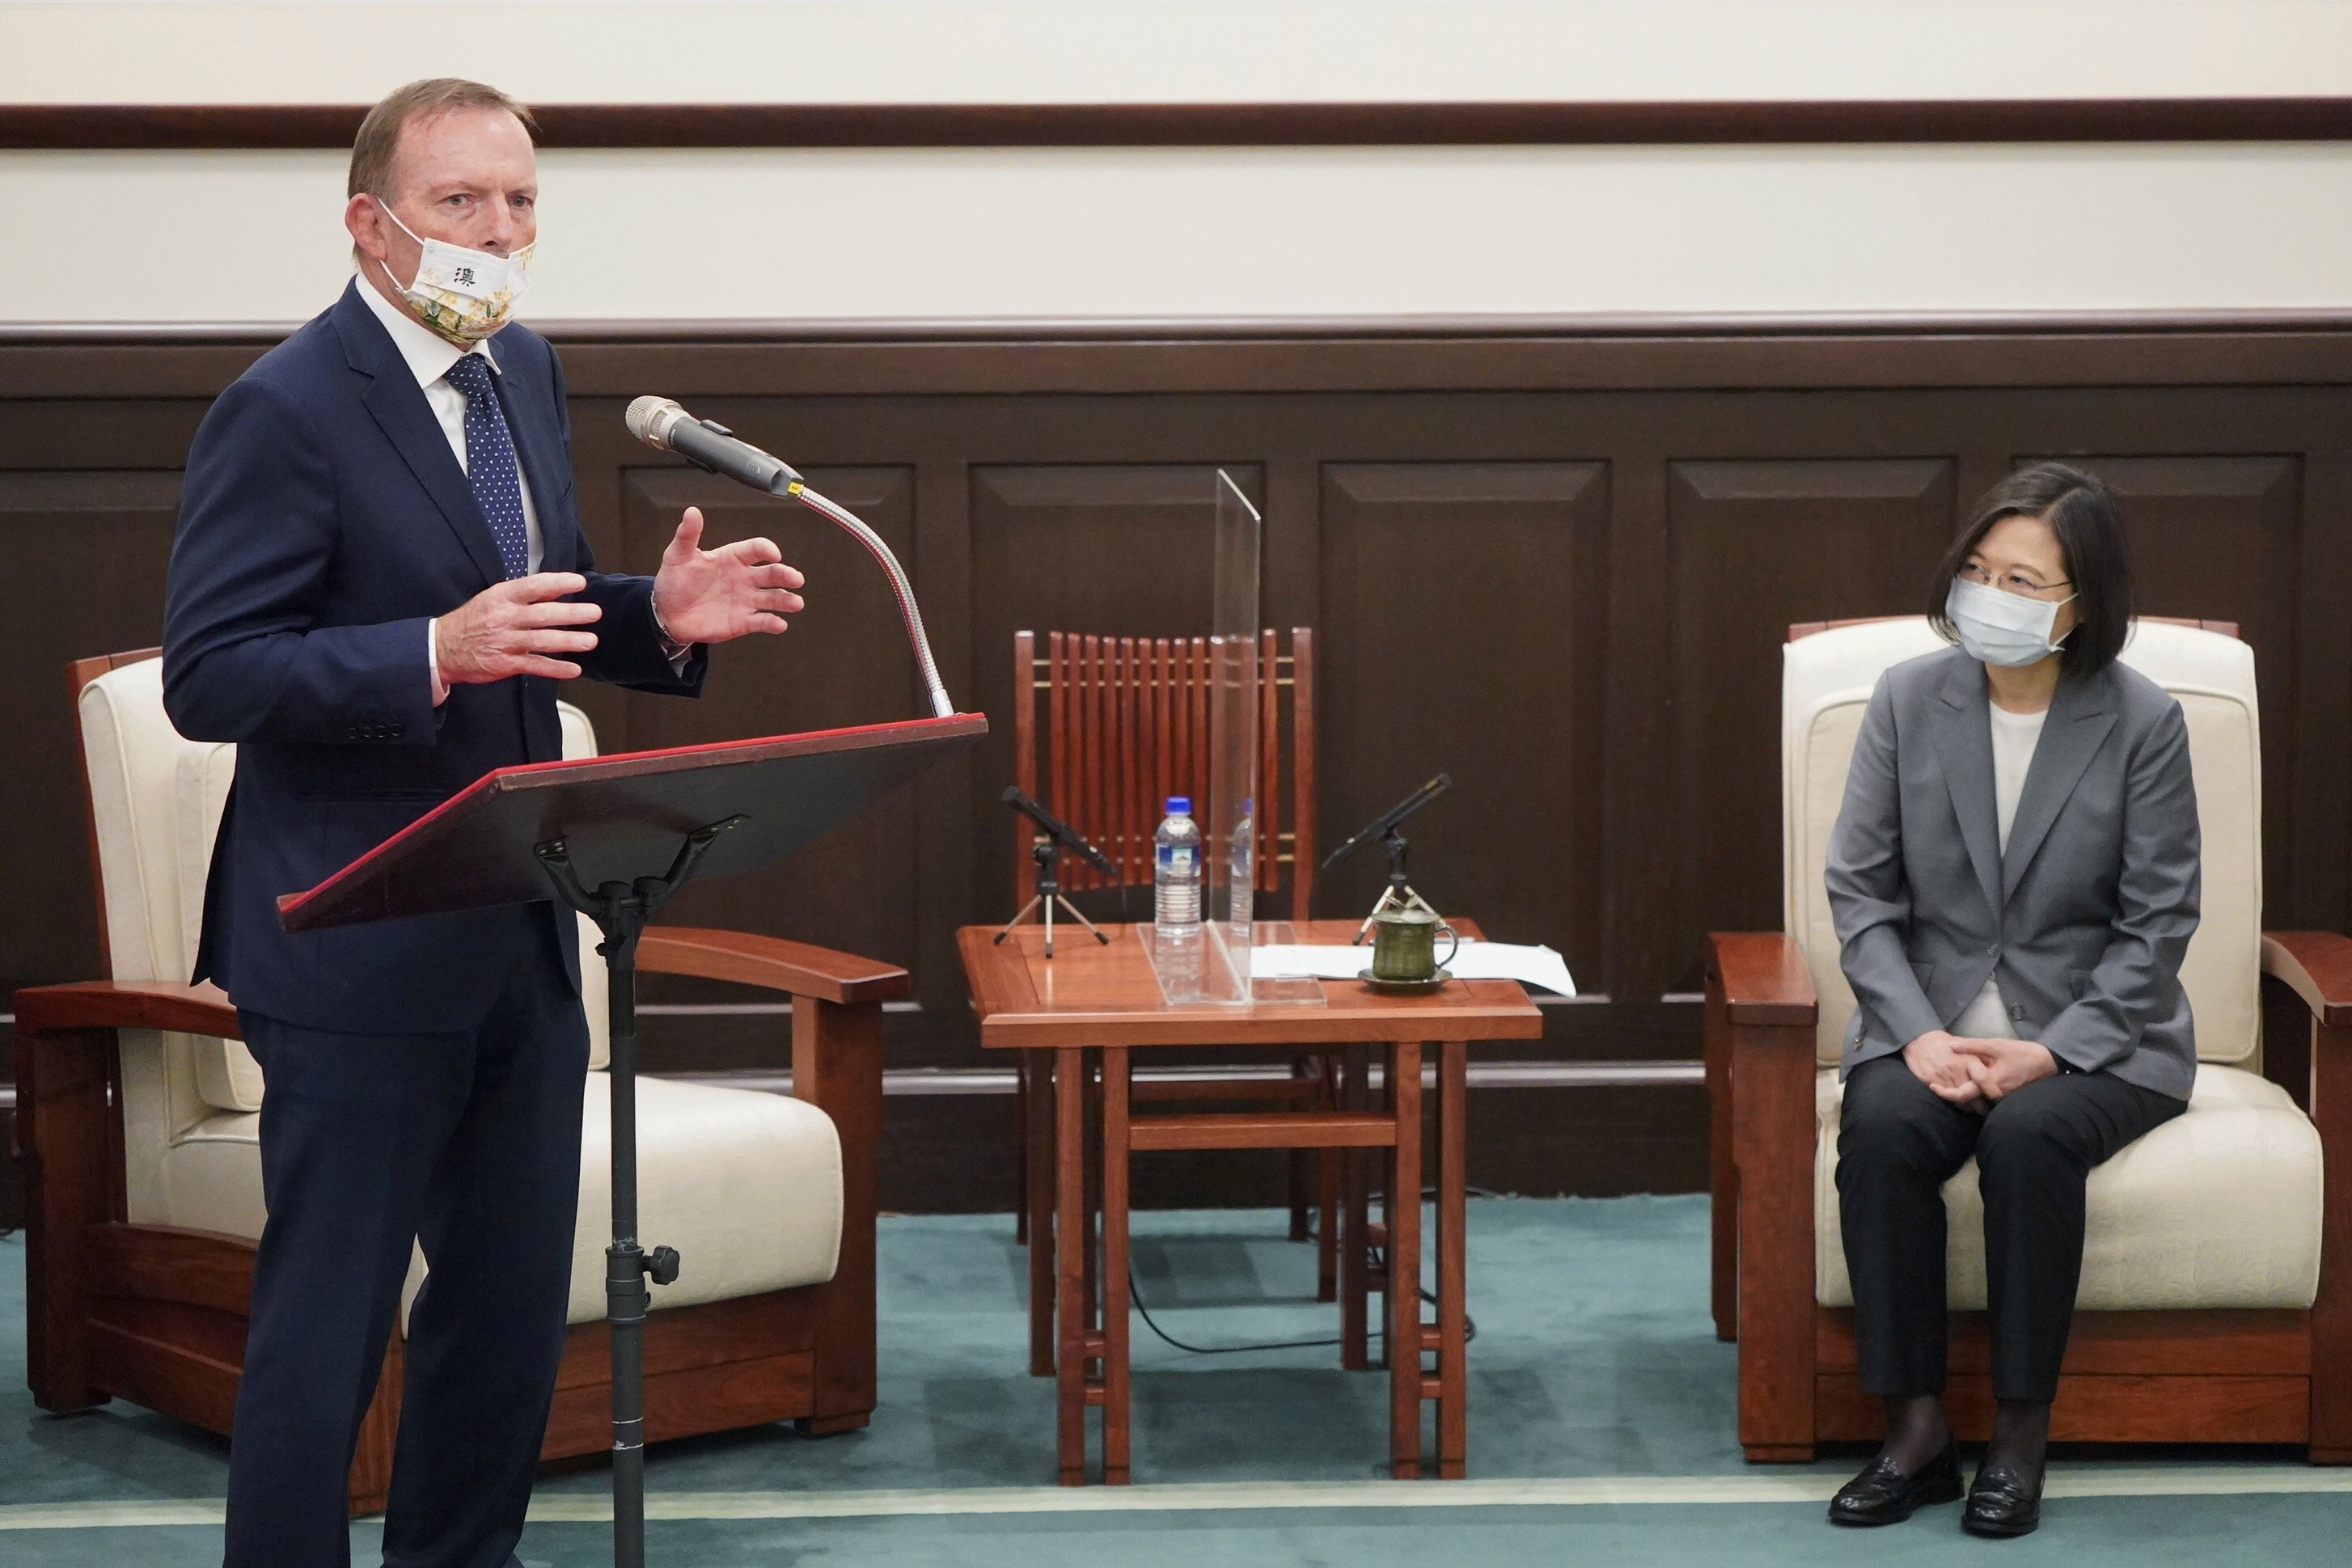 Former Australian Prime Minister Tony Abbott speaks next to Taiwan's President Tsai Ing-wen during their meeting in Taipei, Taiwan October 7, 2021. Central News Agency/Pool via REUTERS